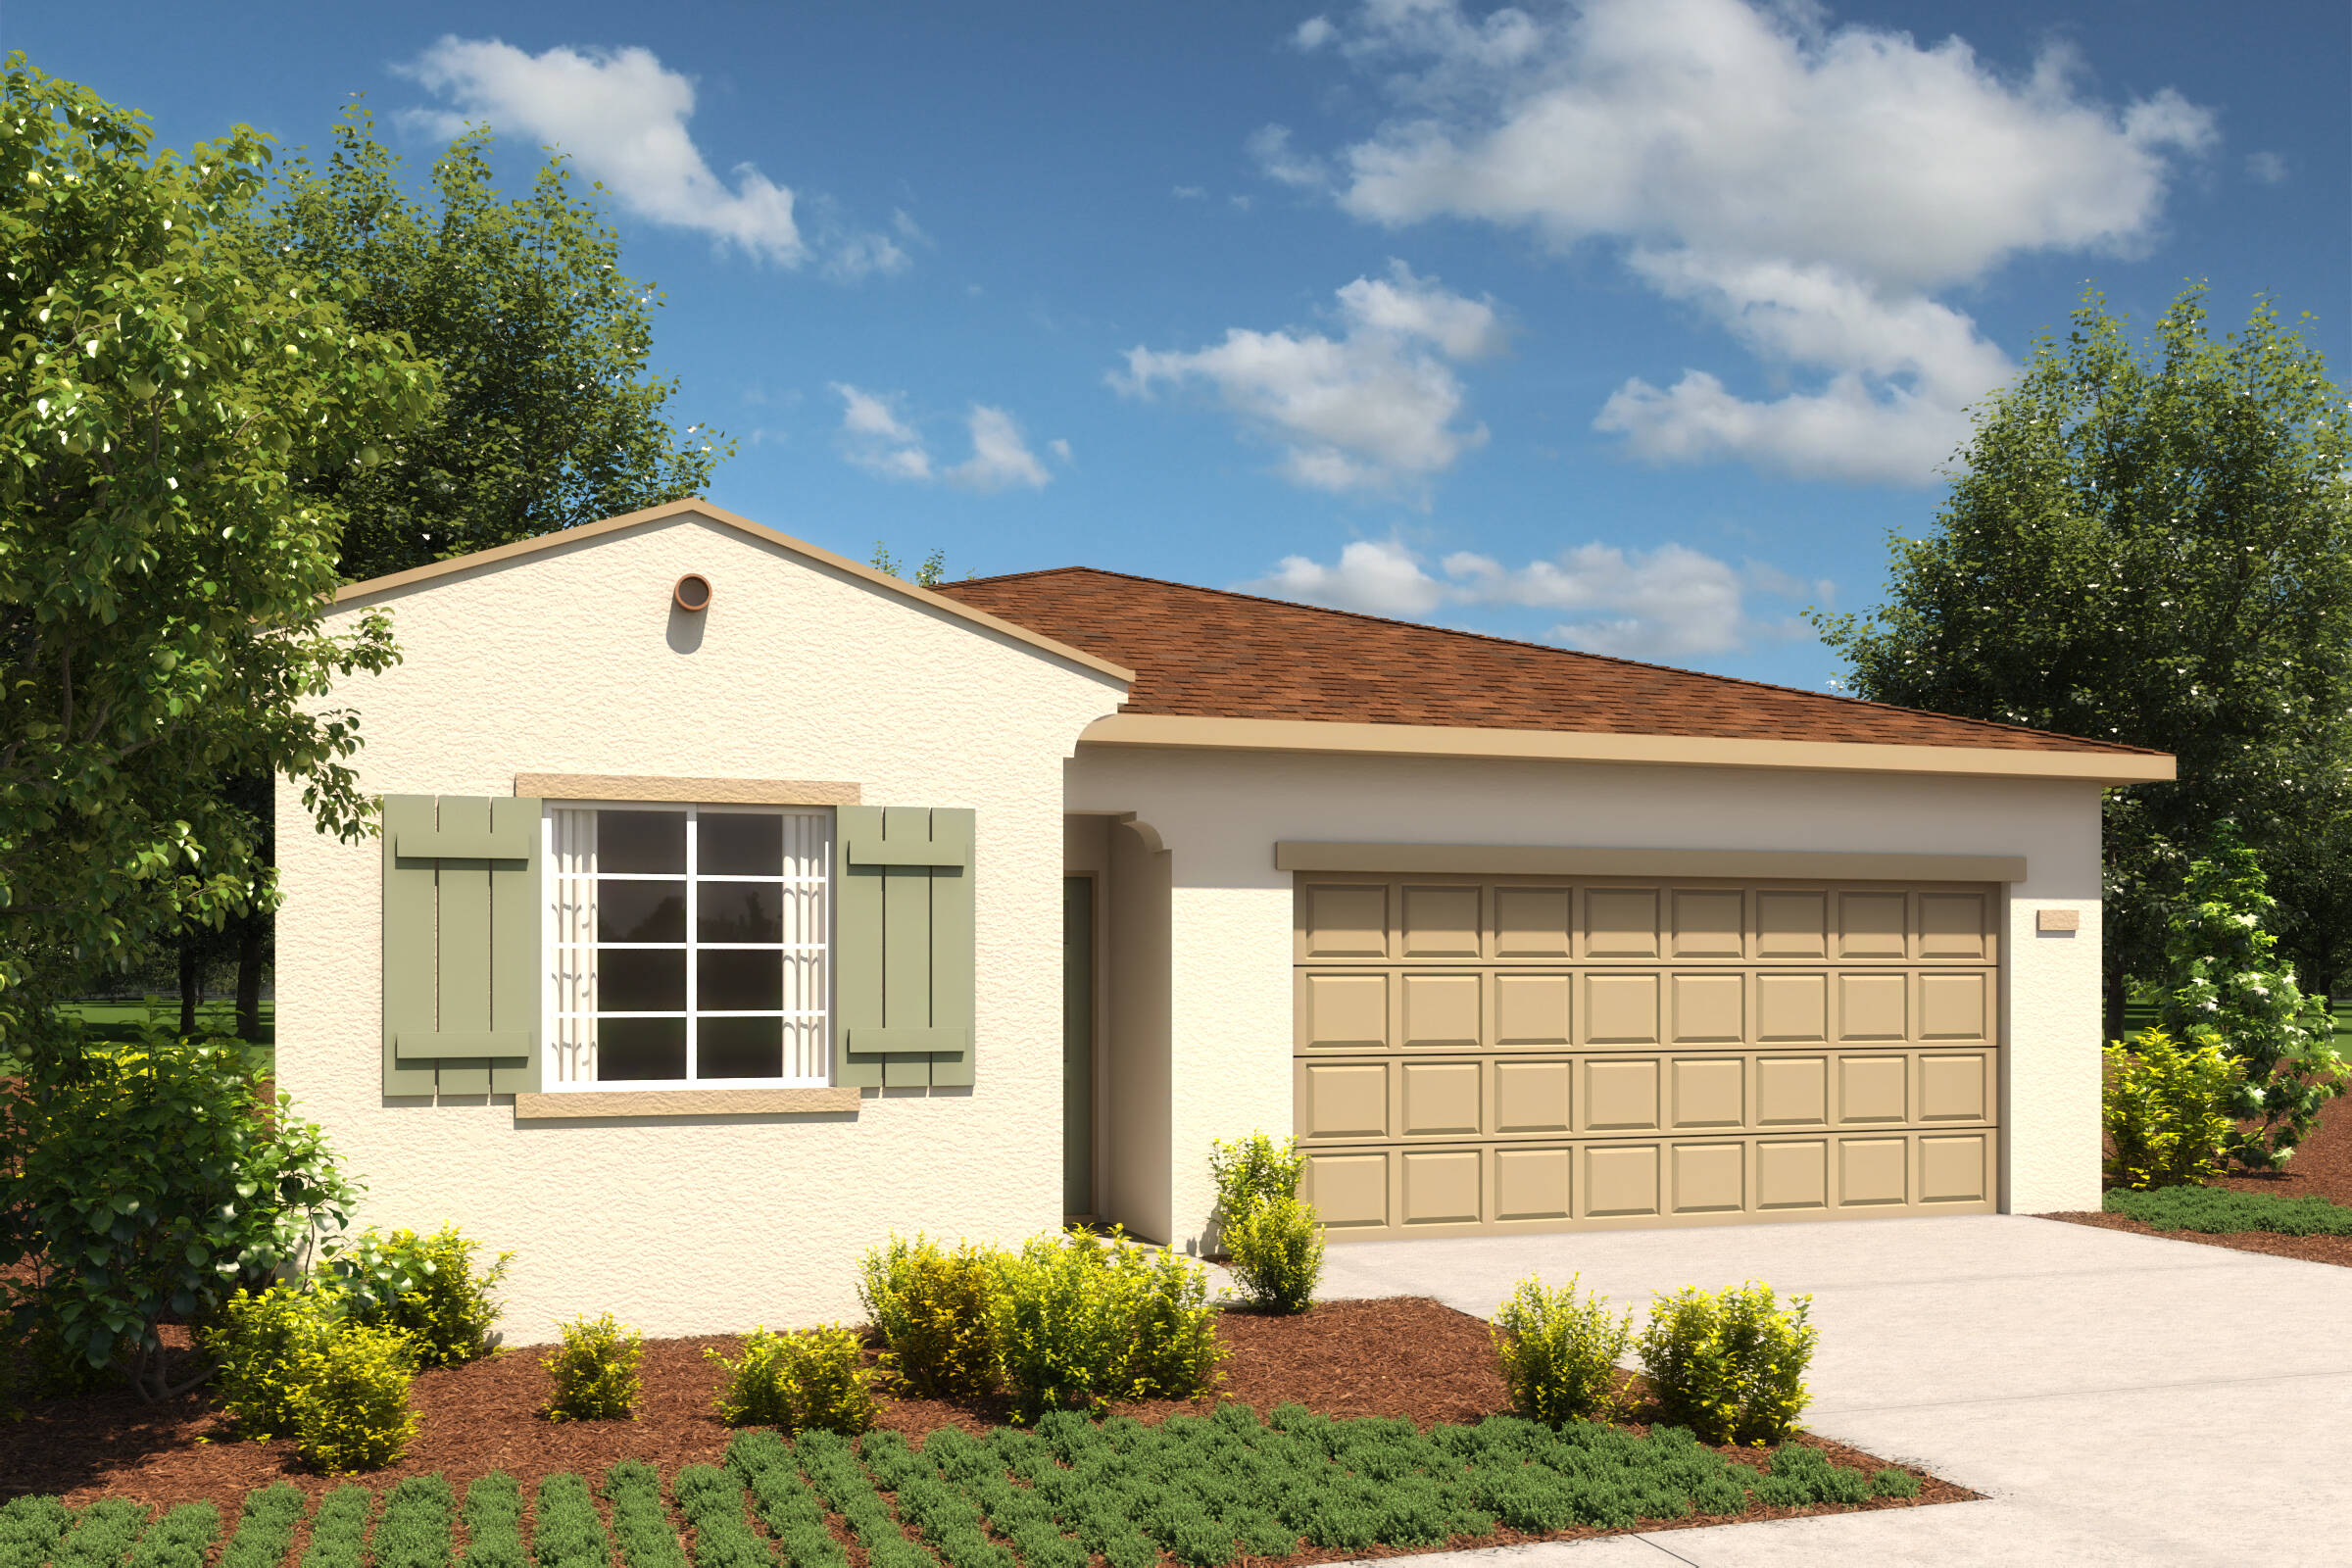 sierra a spanish new homes merced california